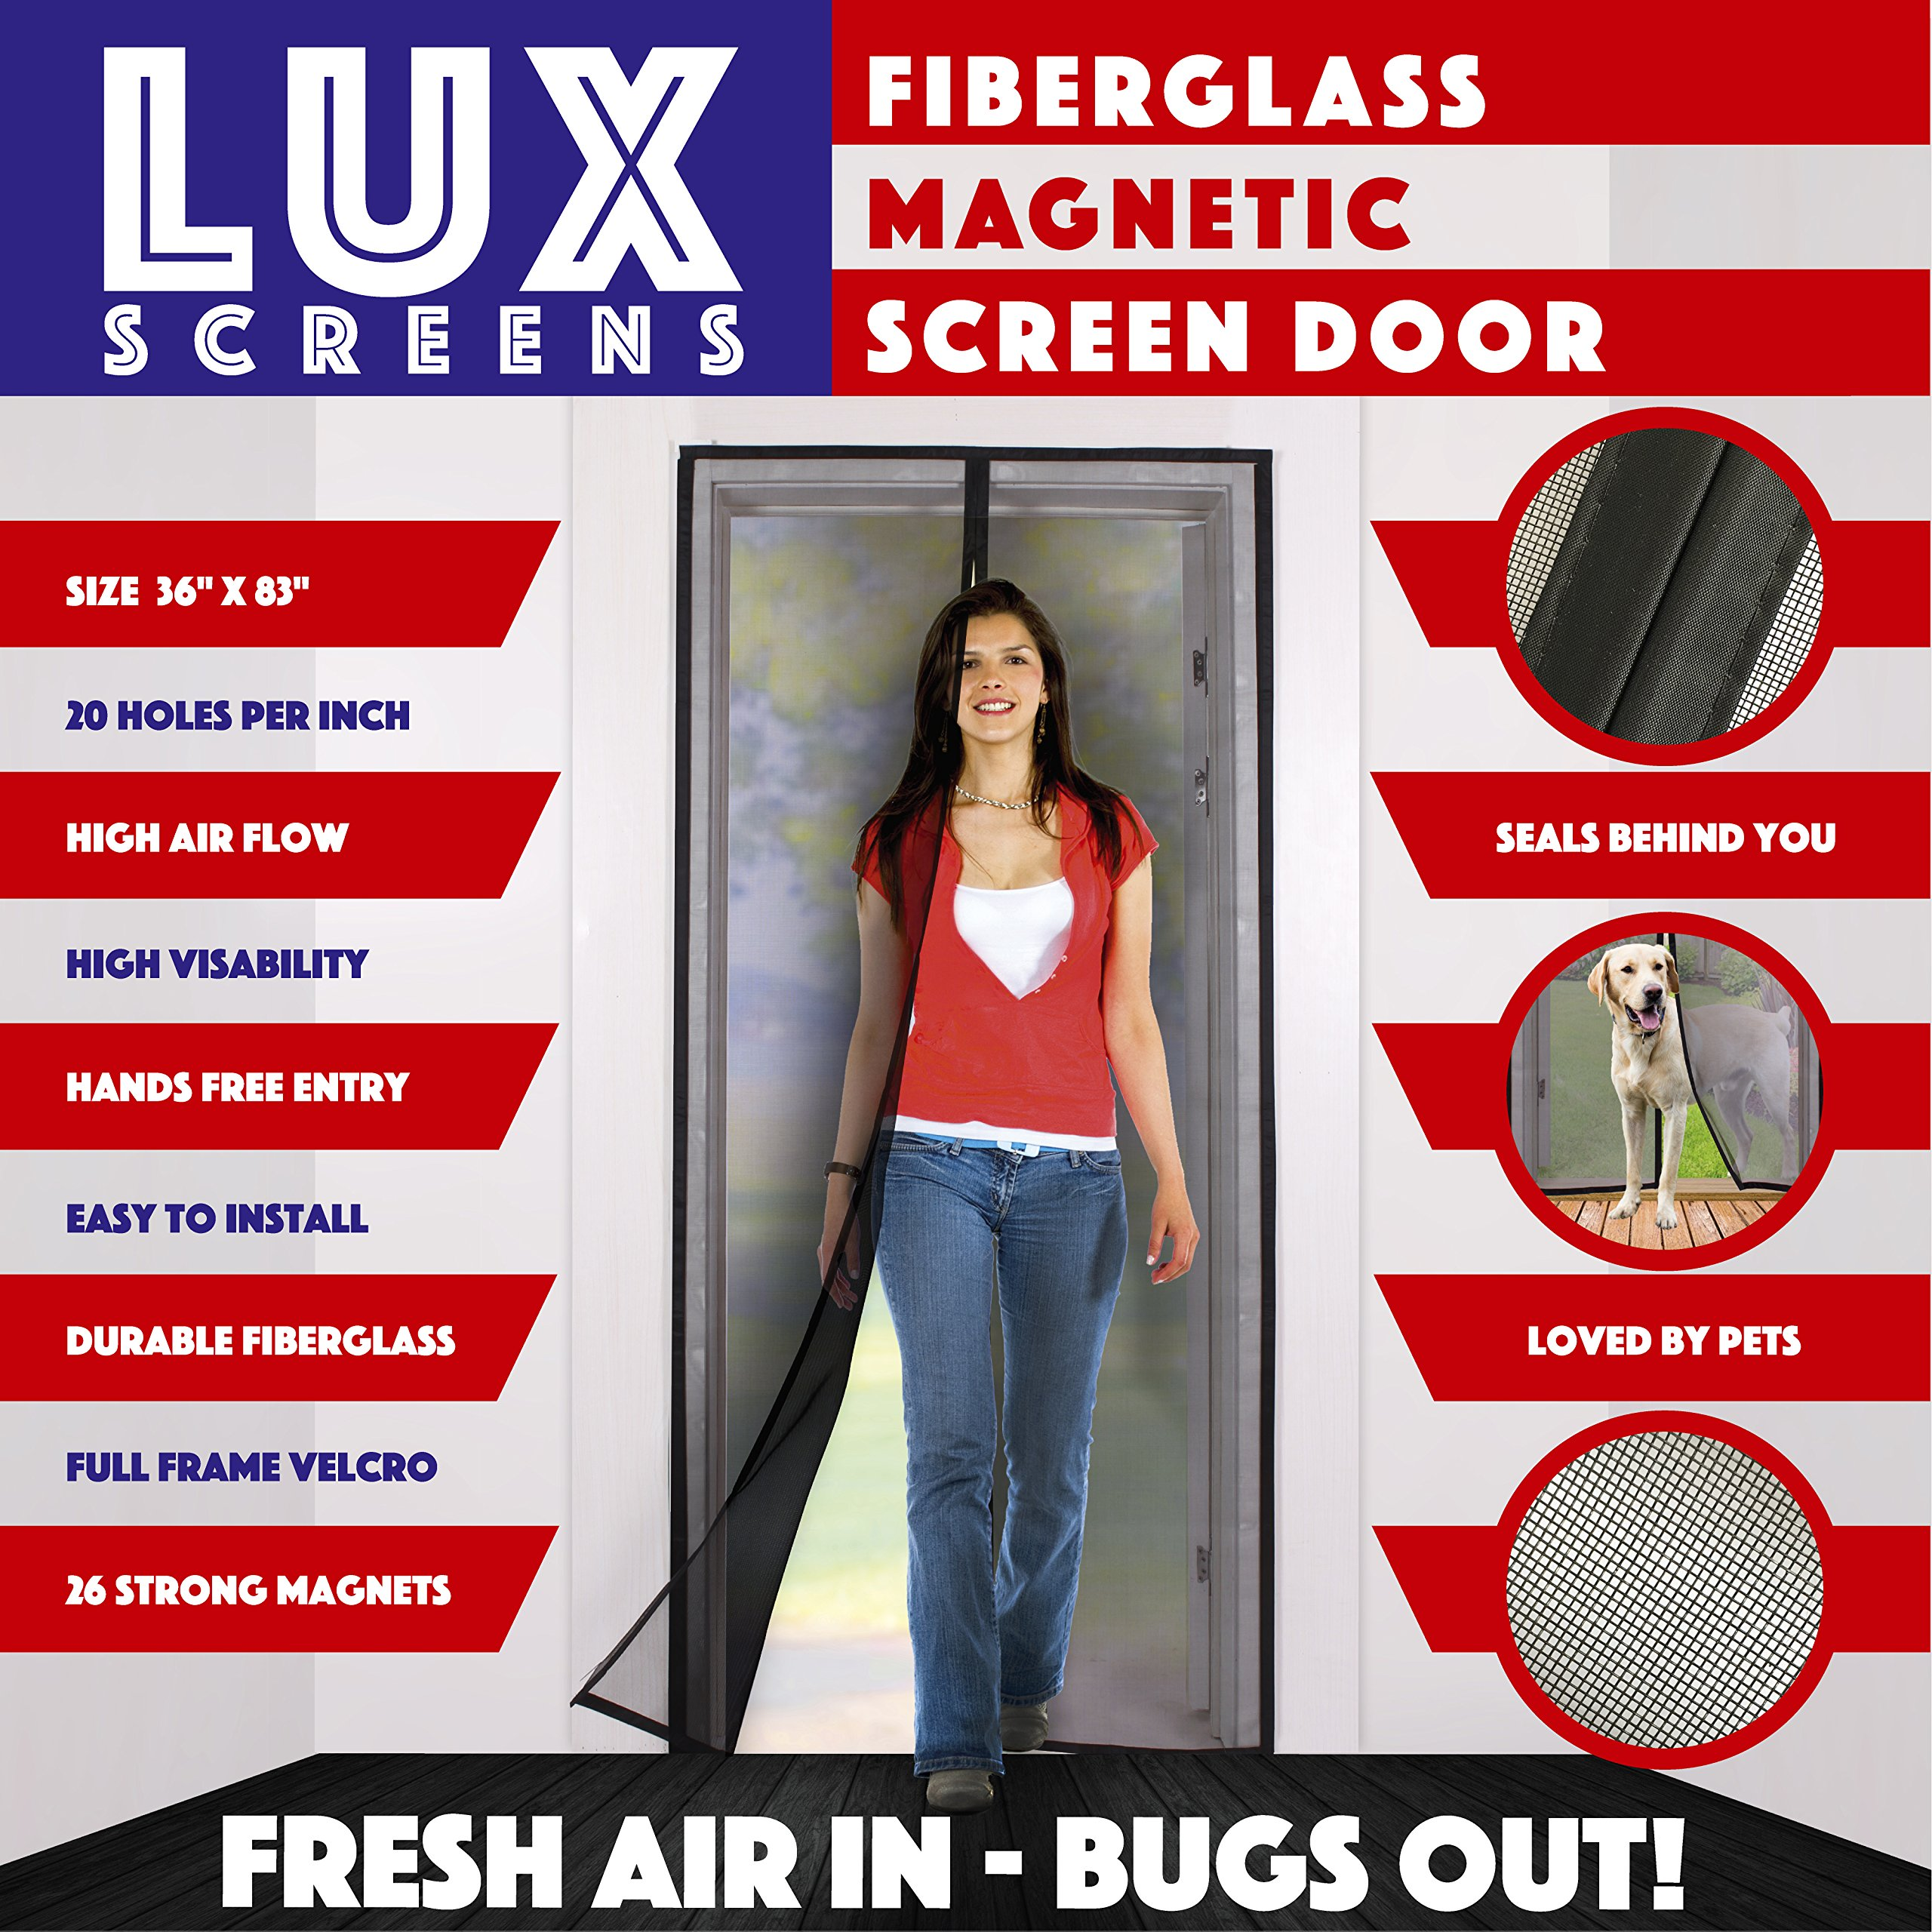 Magnetic Screen Door New 2017 Patent Pending Design Full Frame Velcro & Fiberglass Mesh Not Polyester This Instant Retractable Bug Screen Opens and Closes like Magic it's the Last Screen You'll Need